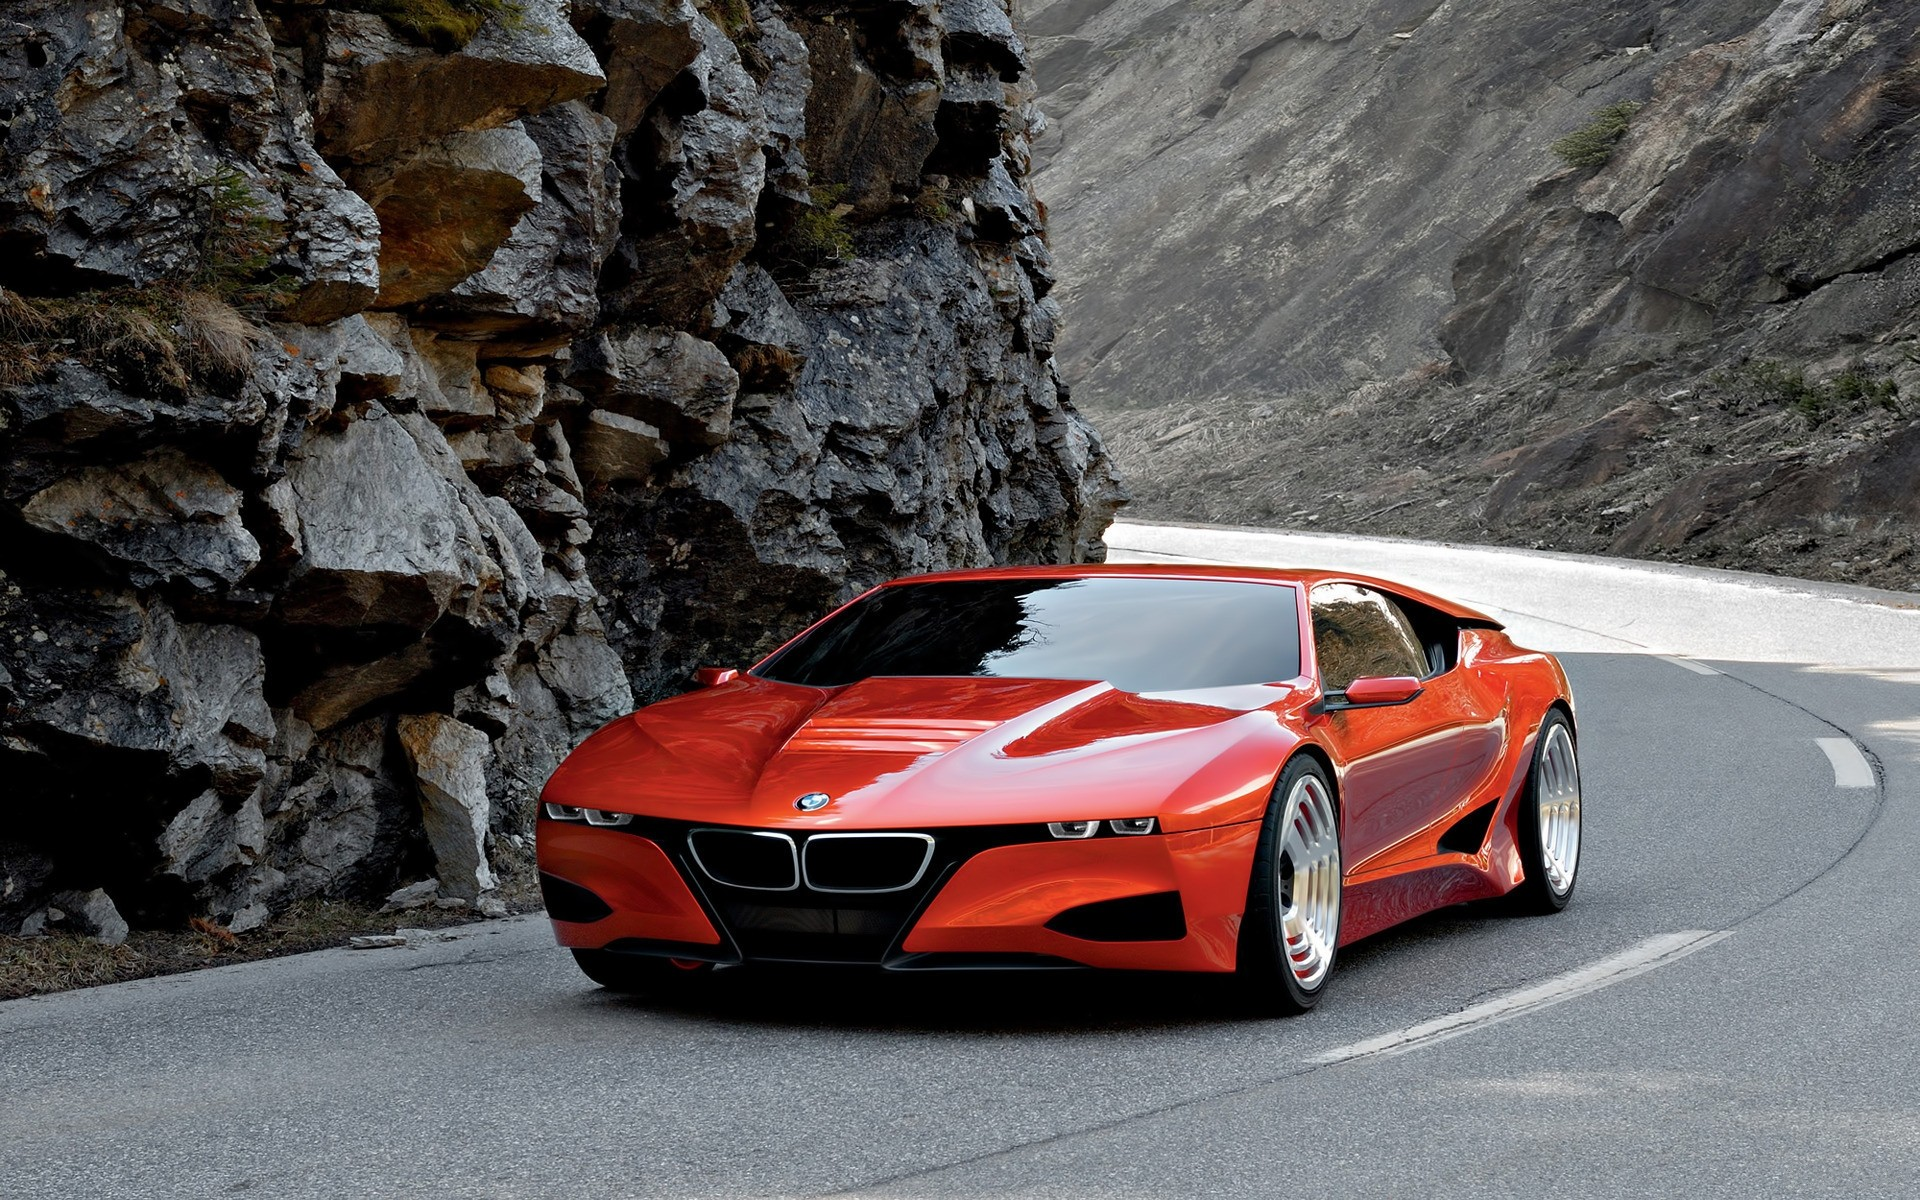 Concept red sports car BMW, photo wallpaper.